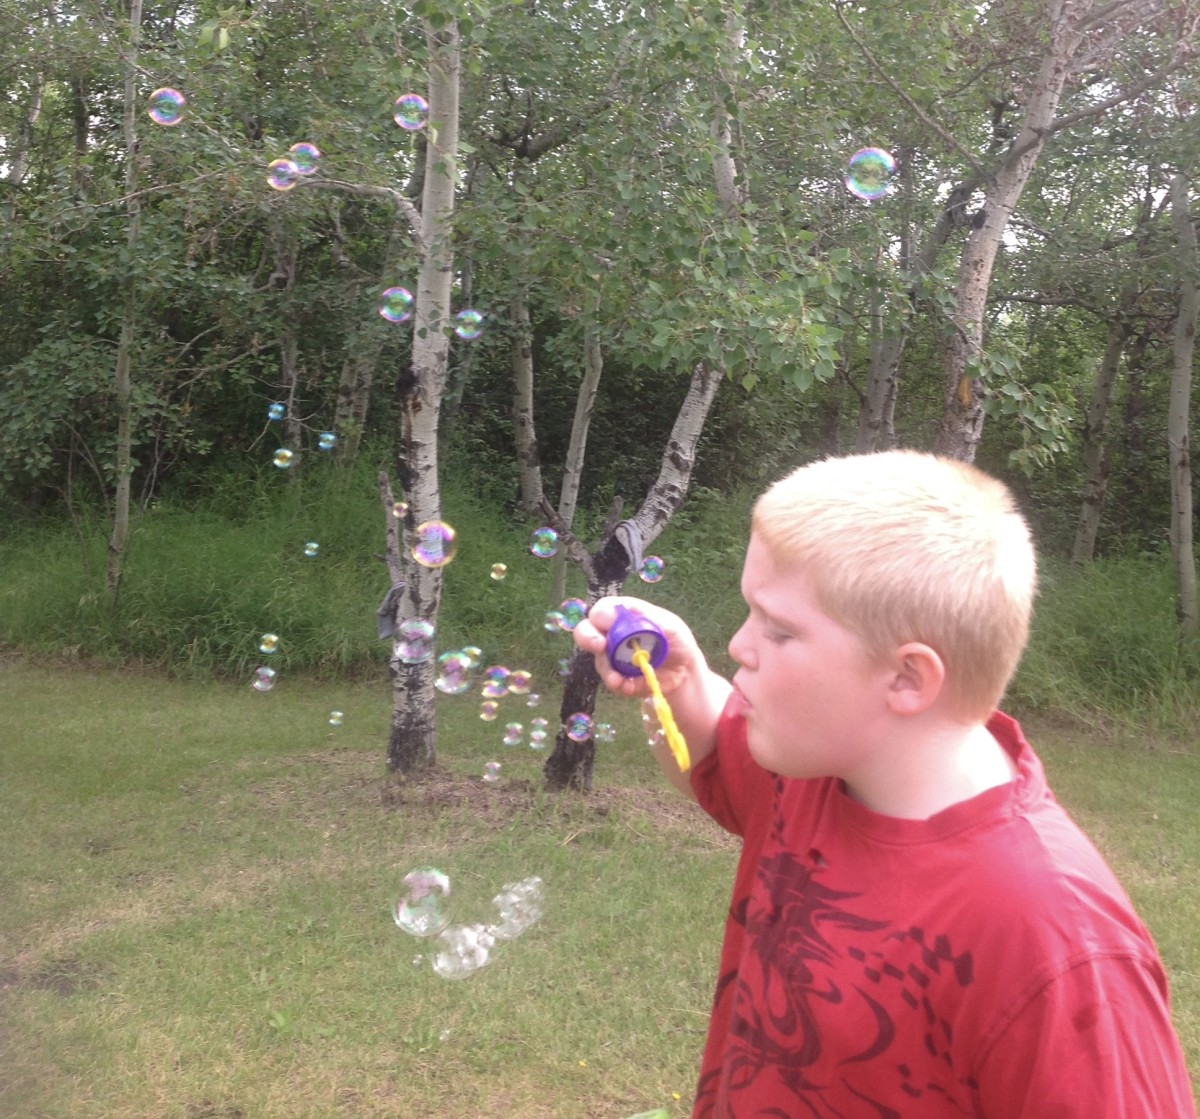 Do something fun. Play like a child, Blowing bubbles is fun.